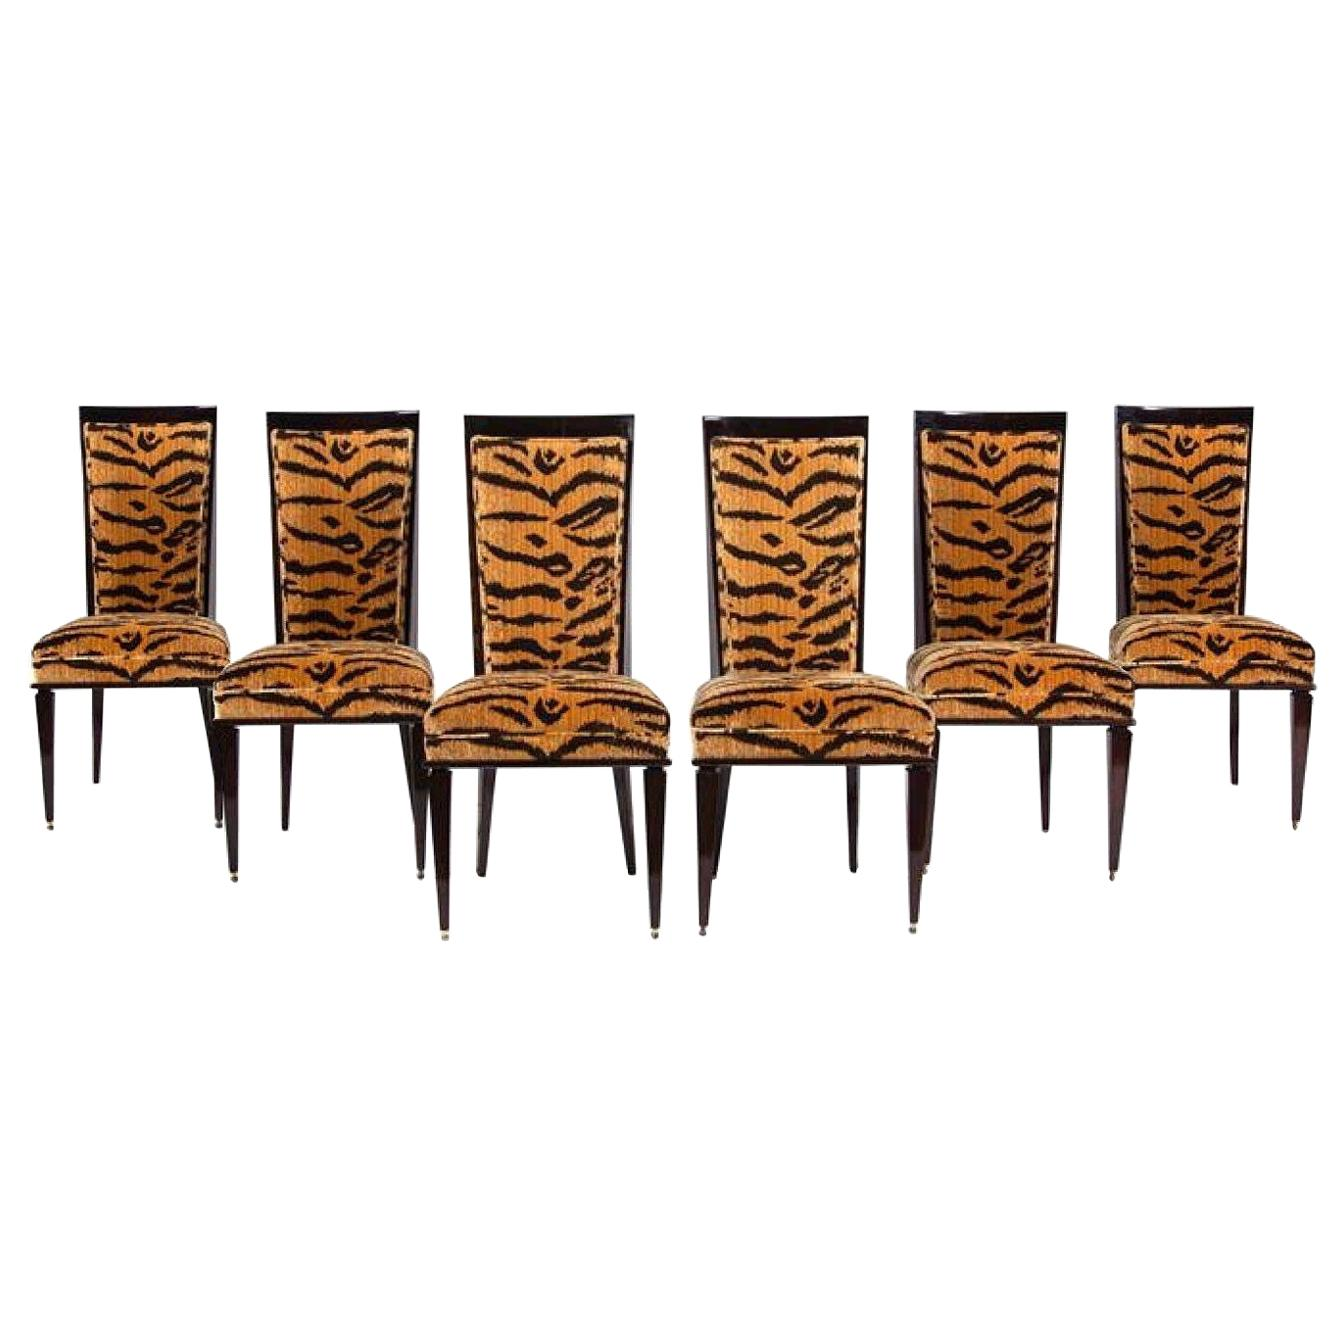 French Art Deco Six Leopard Print Dining Chairs